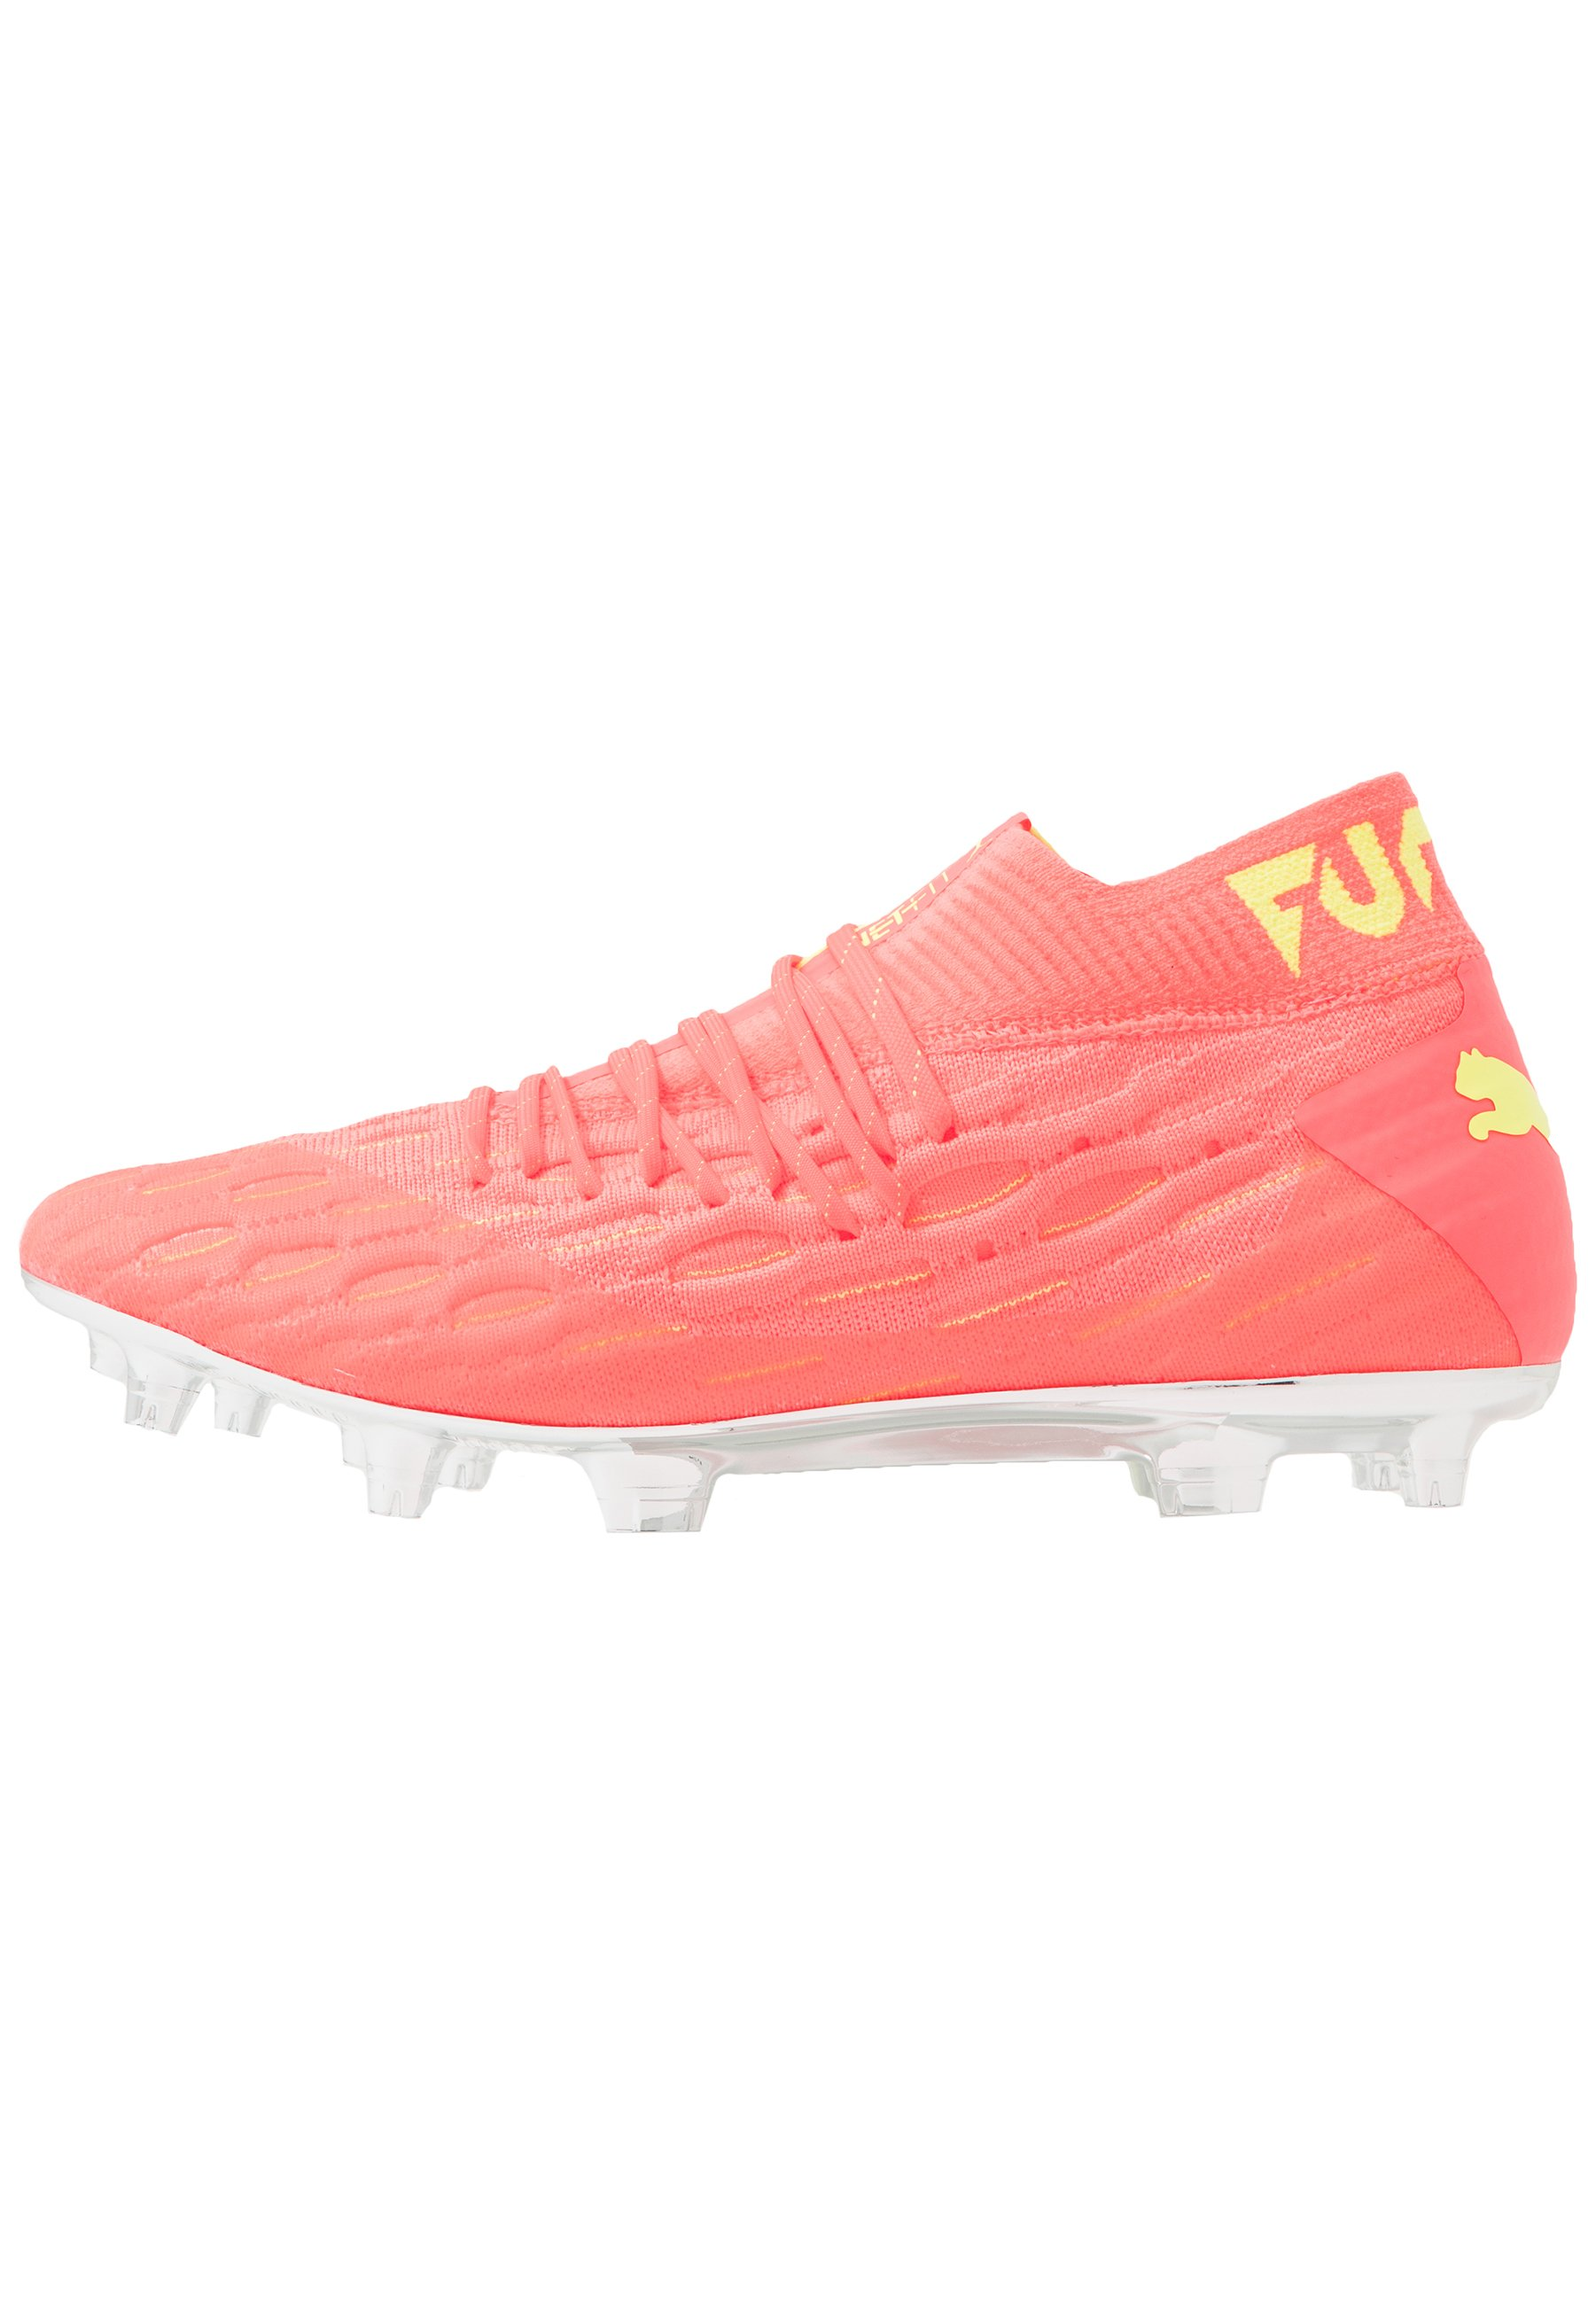 FUTURE 5.1 NETFIT OSG FGAG Chaussures de foot à crampons energy peachfizzy yellow